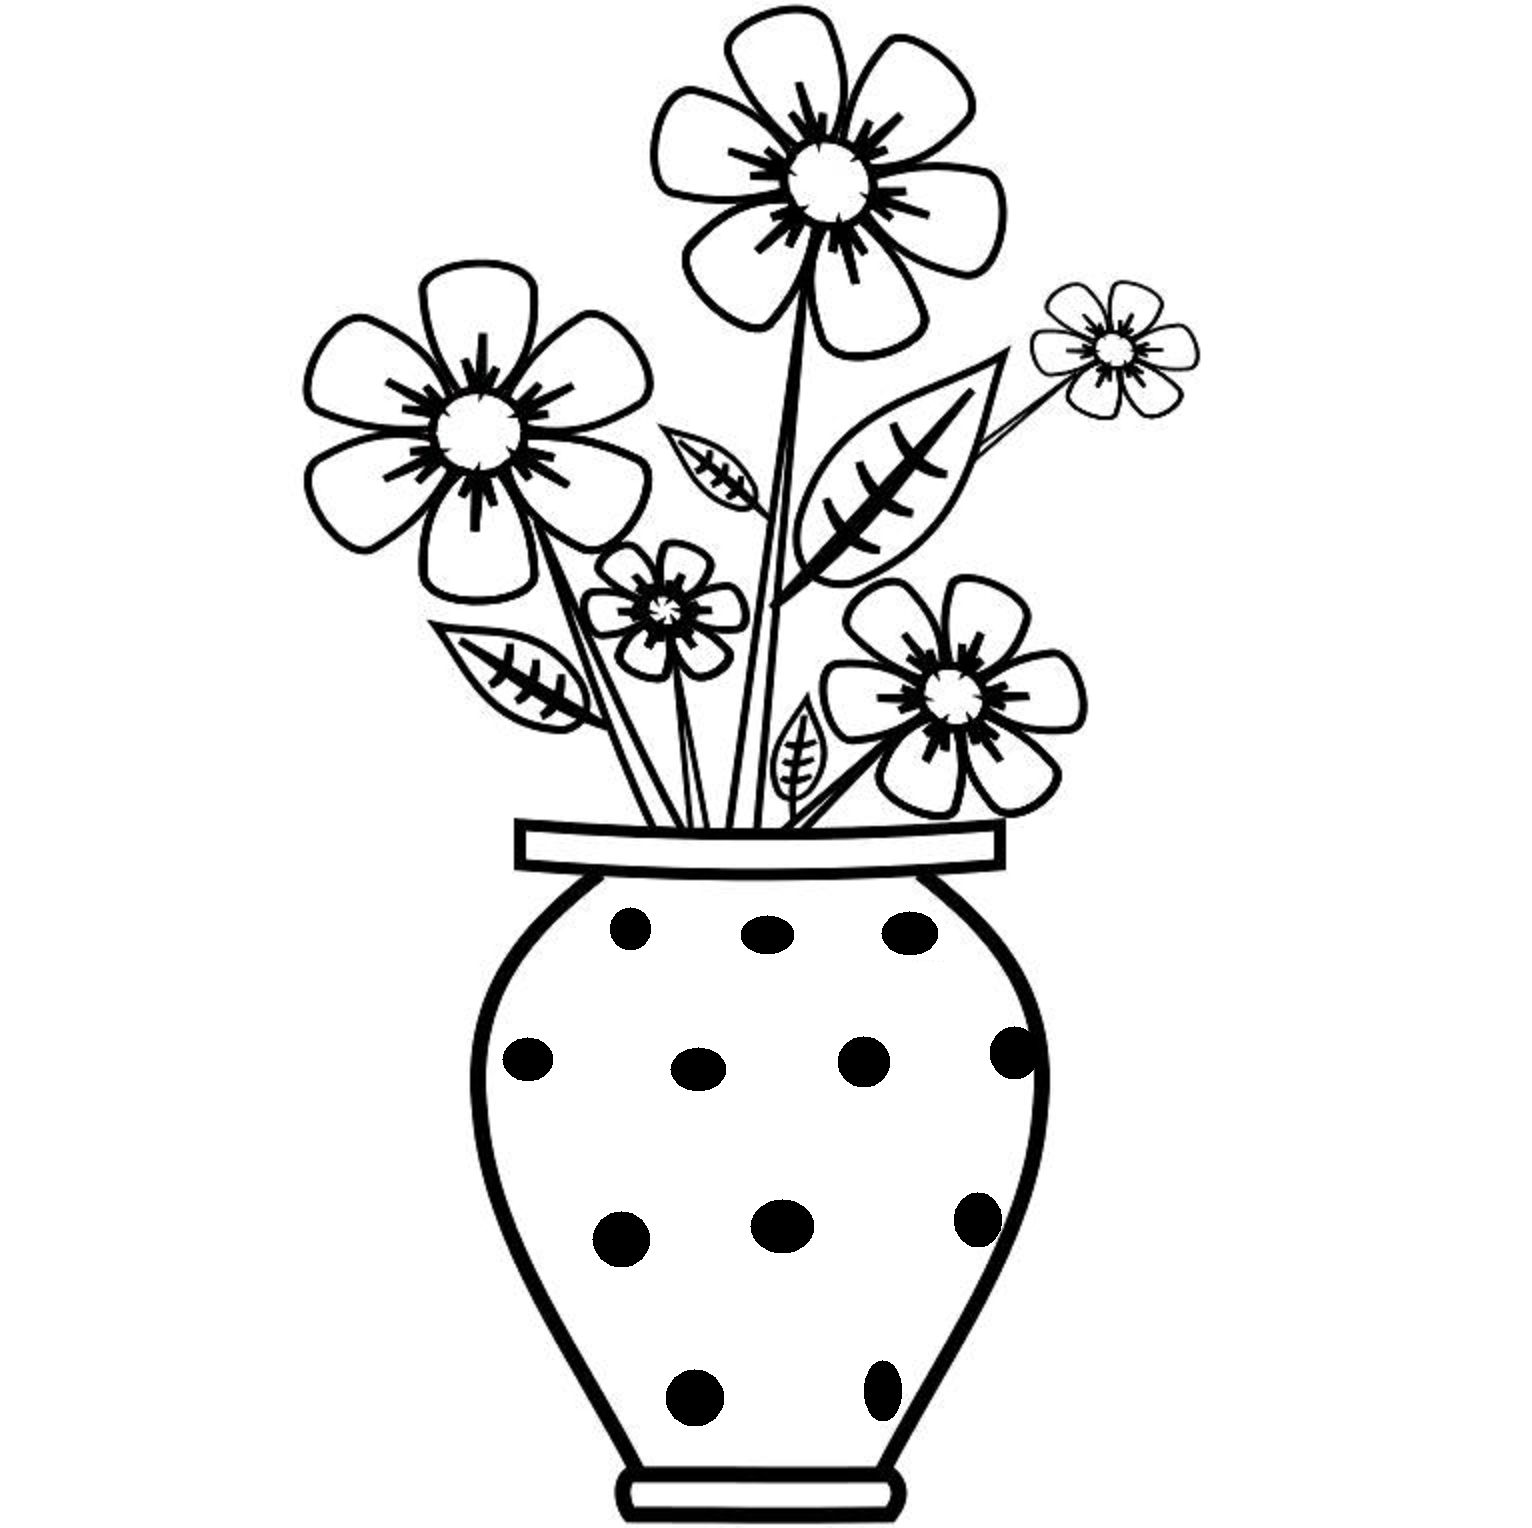 1532x1528 flower vase with flowers drawings how to draw flower vase